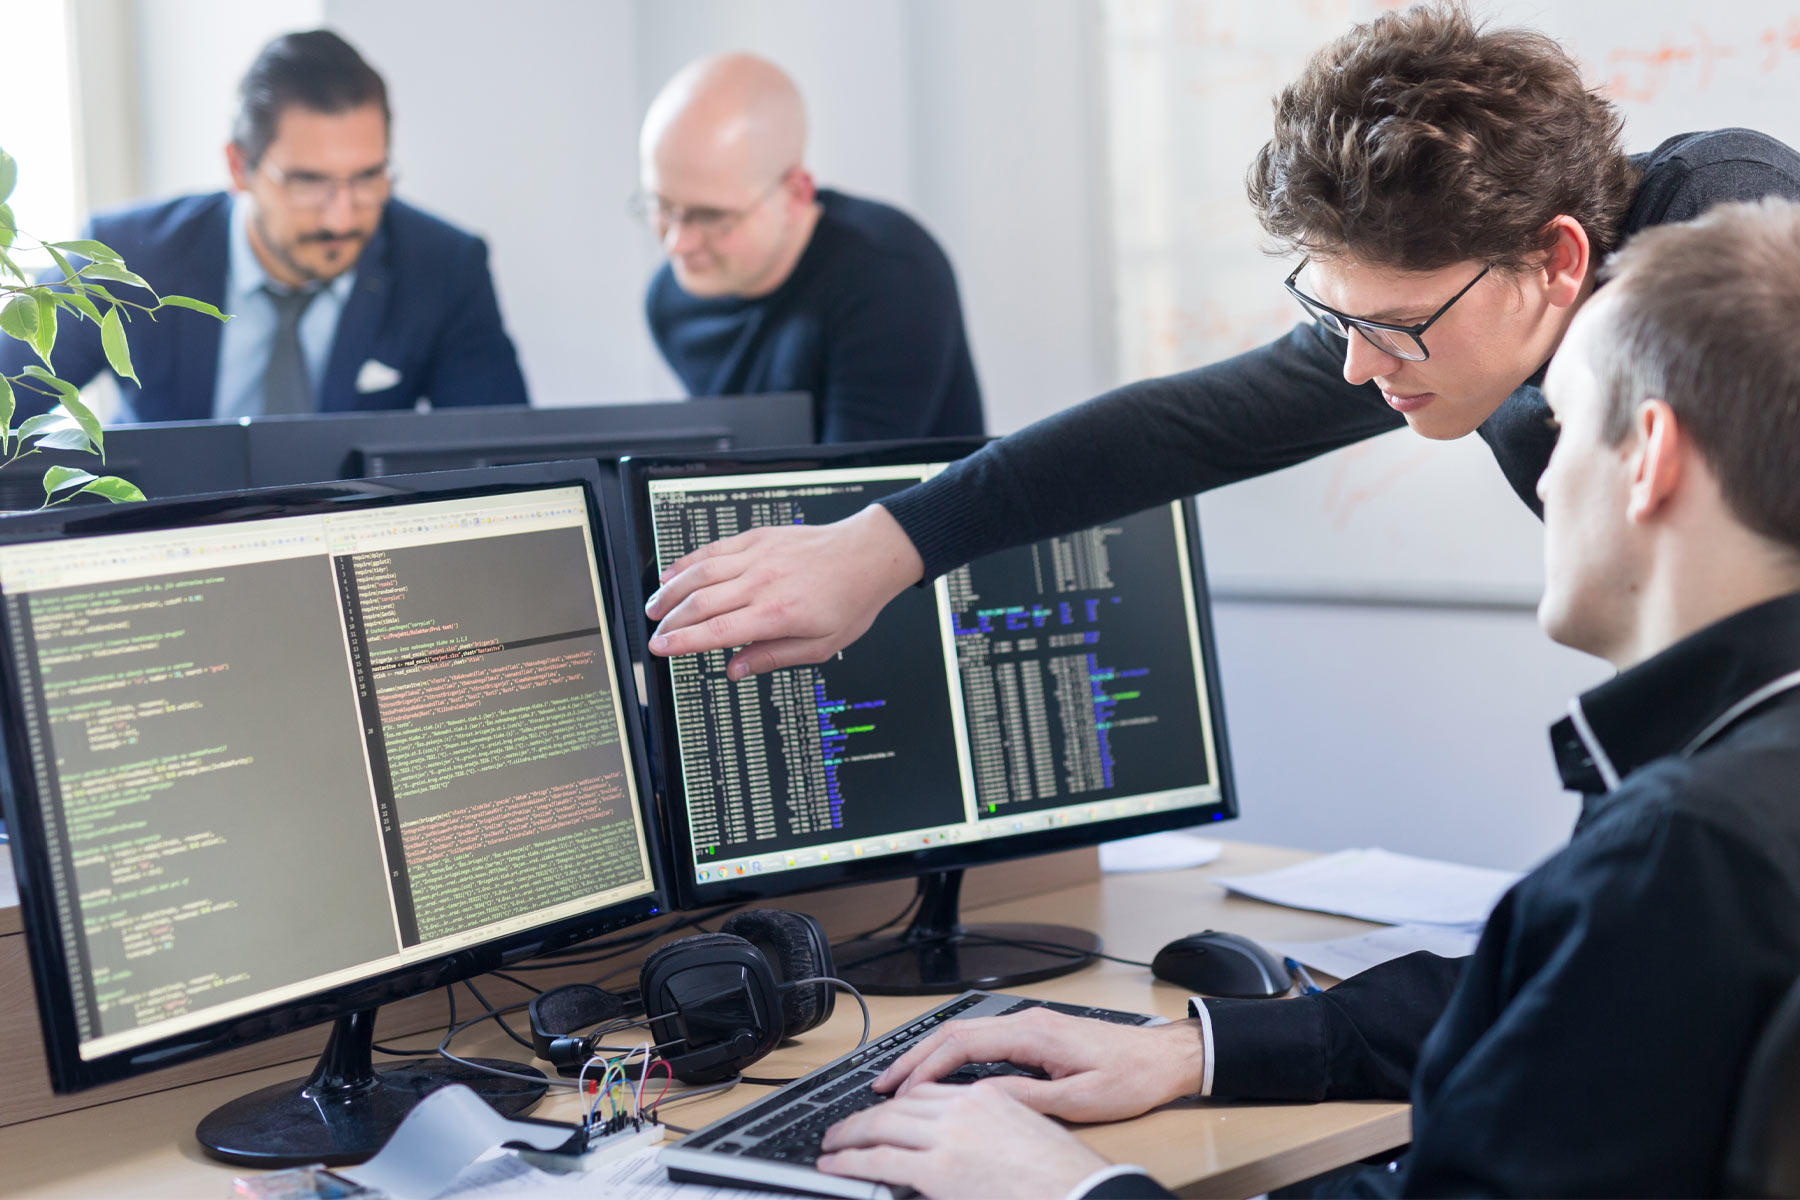 employees looking at coding on computer screens and pointing at it